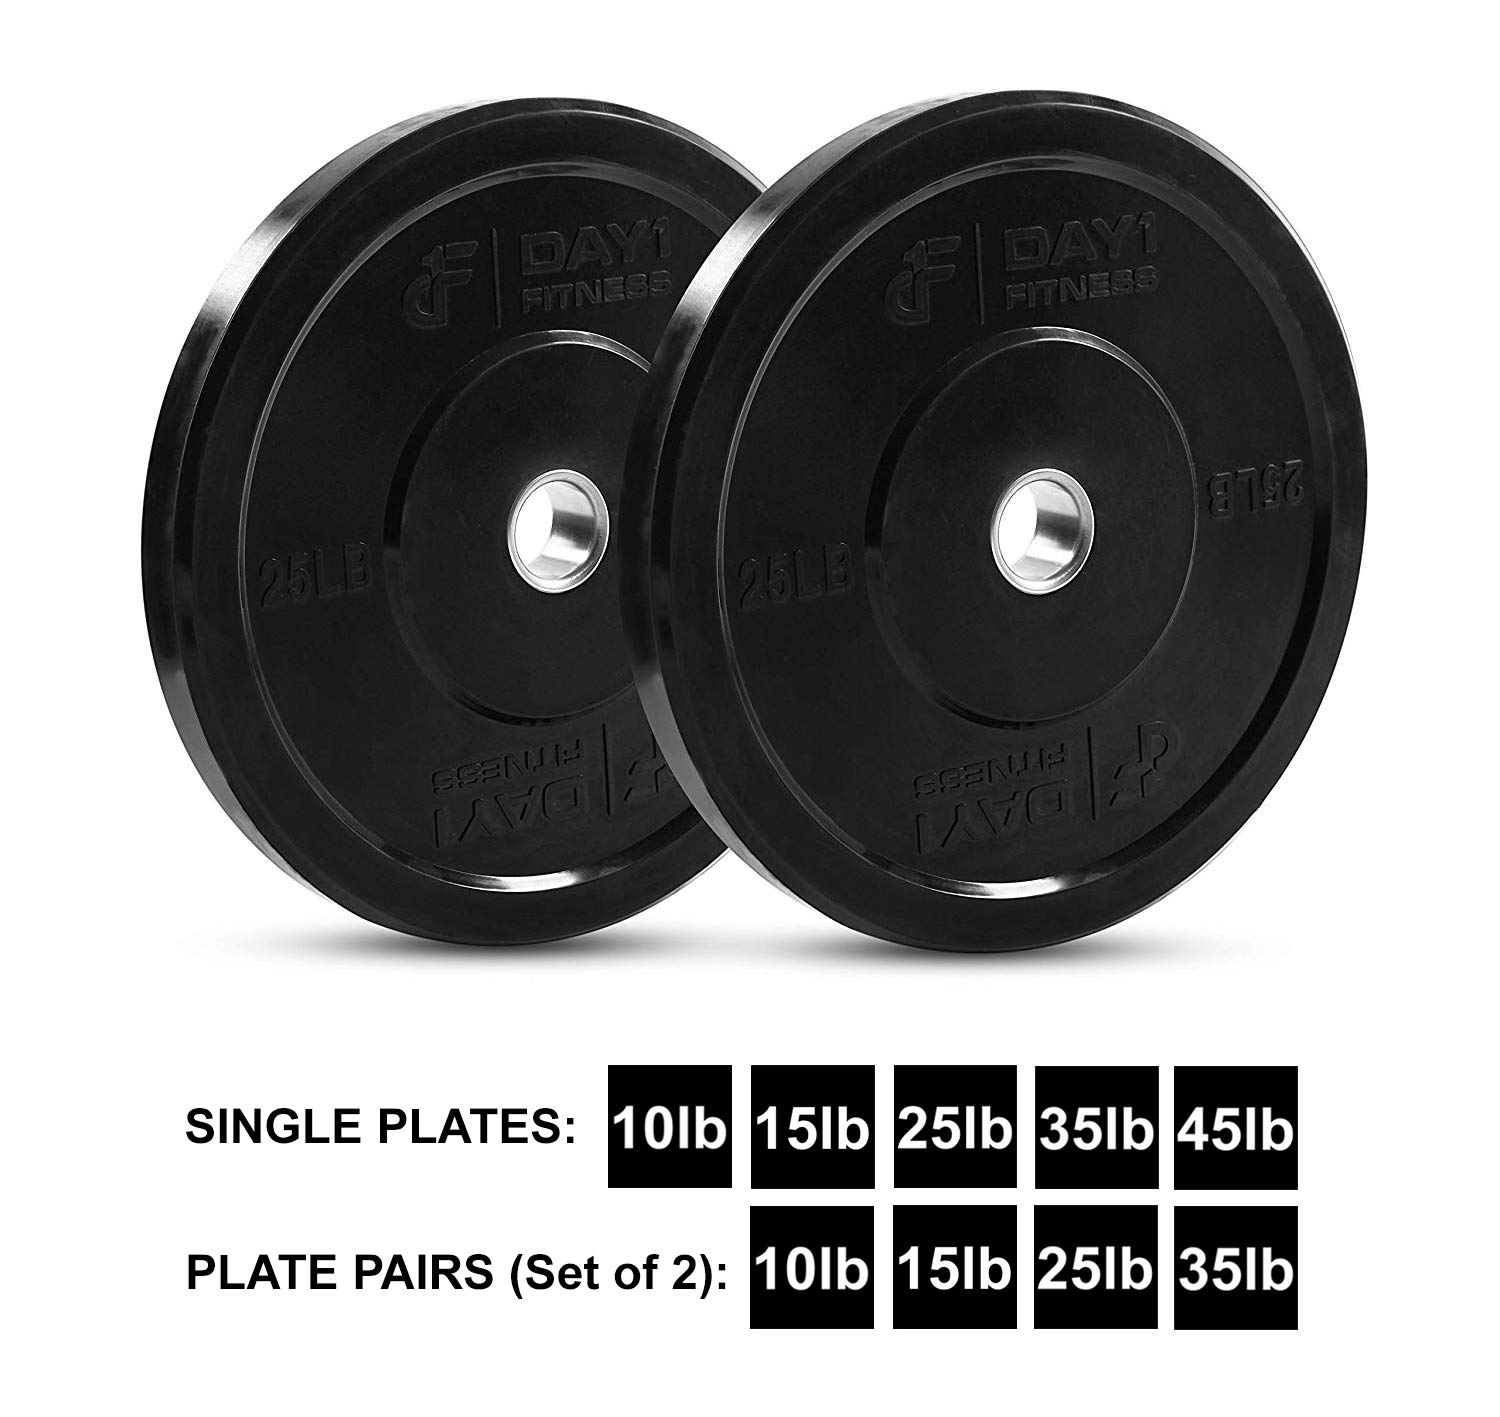 """Bars 5 Weights Available 10 to 45lbs Strength Training Olympic Bumper Plate 2/"""" Shock-Absorbing - by D1F- Weighted Plates for Barbells Singles or Pairs and Working Out Day 1 Fitness D1BP15PR Minimal Bounce Weights for Lifting"""